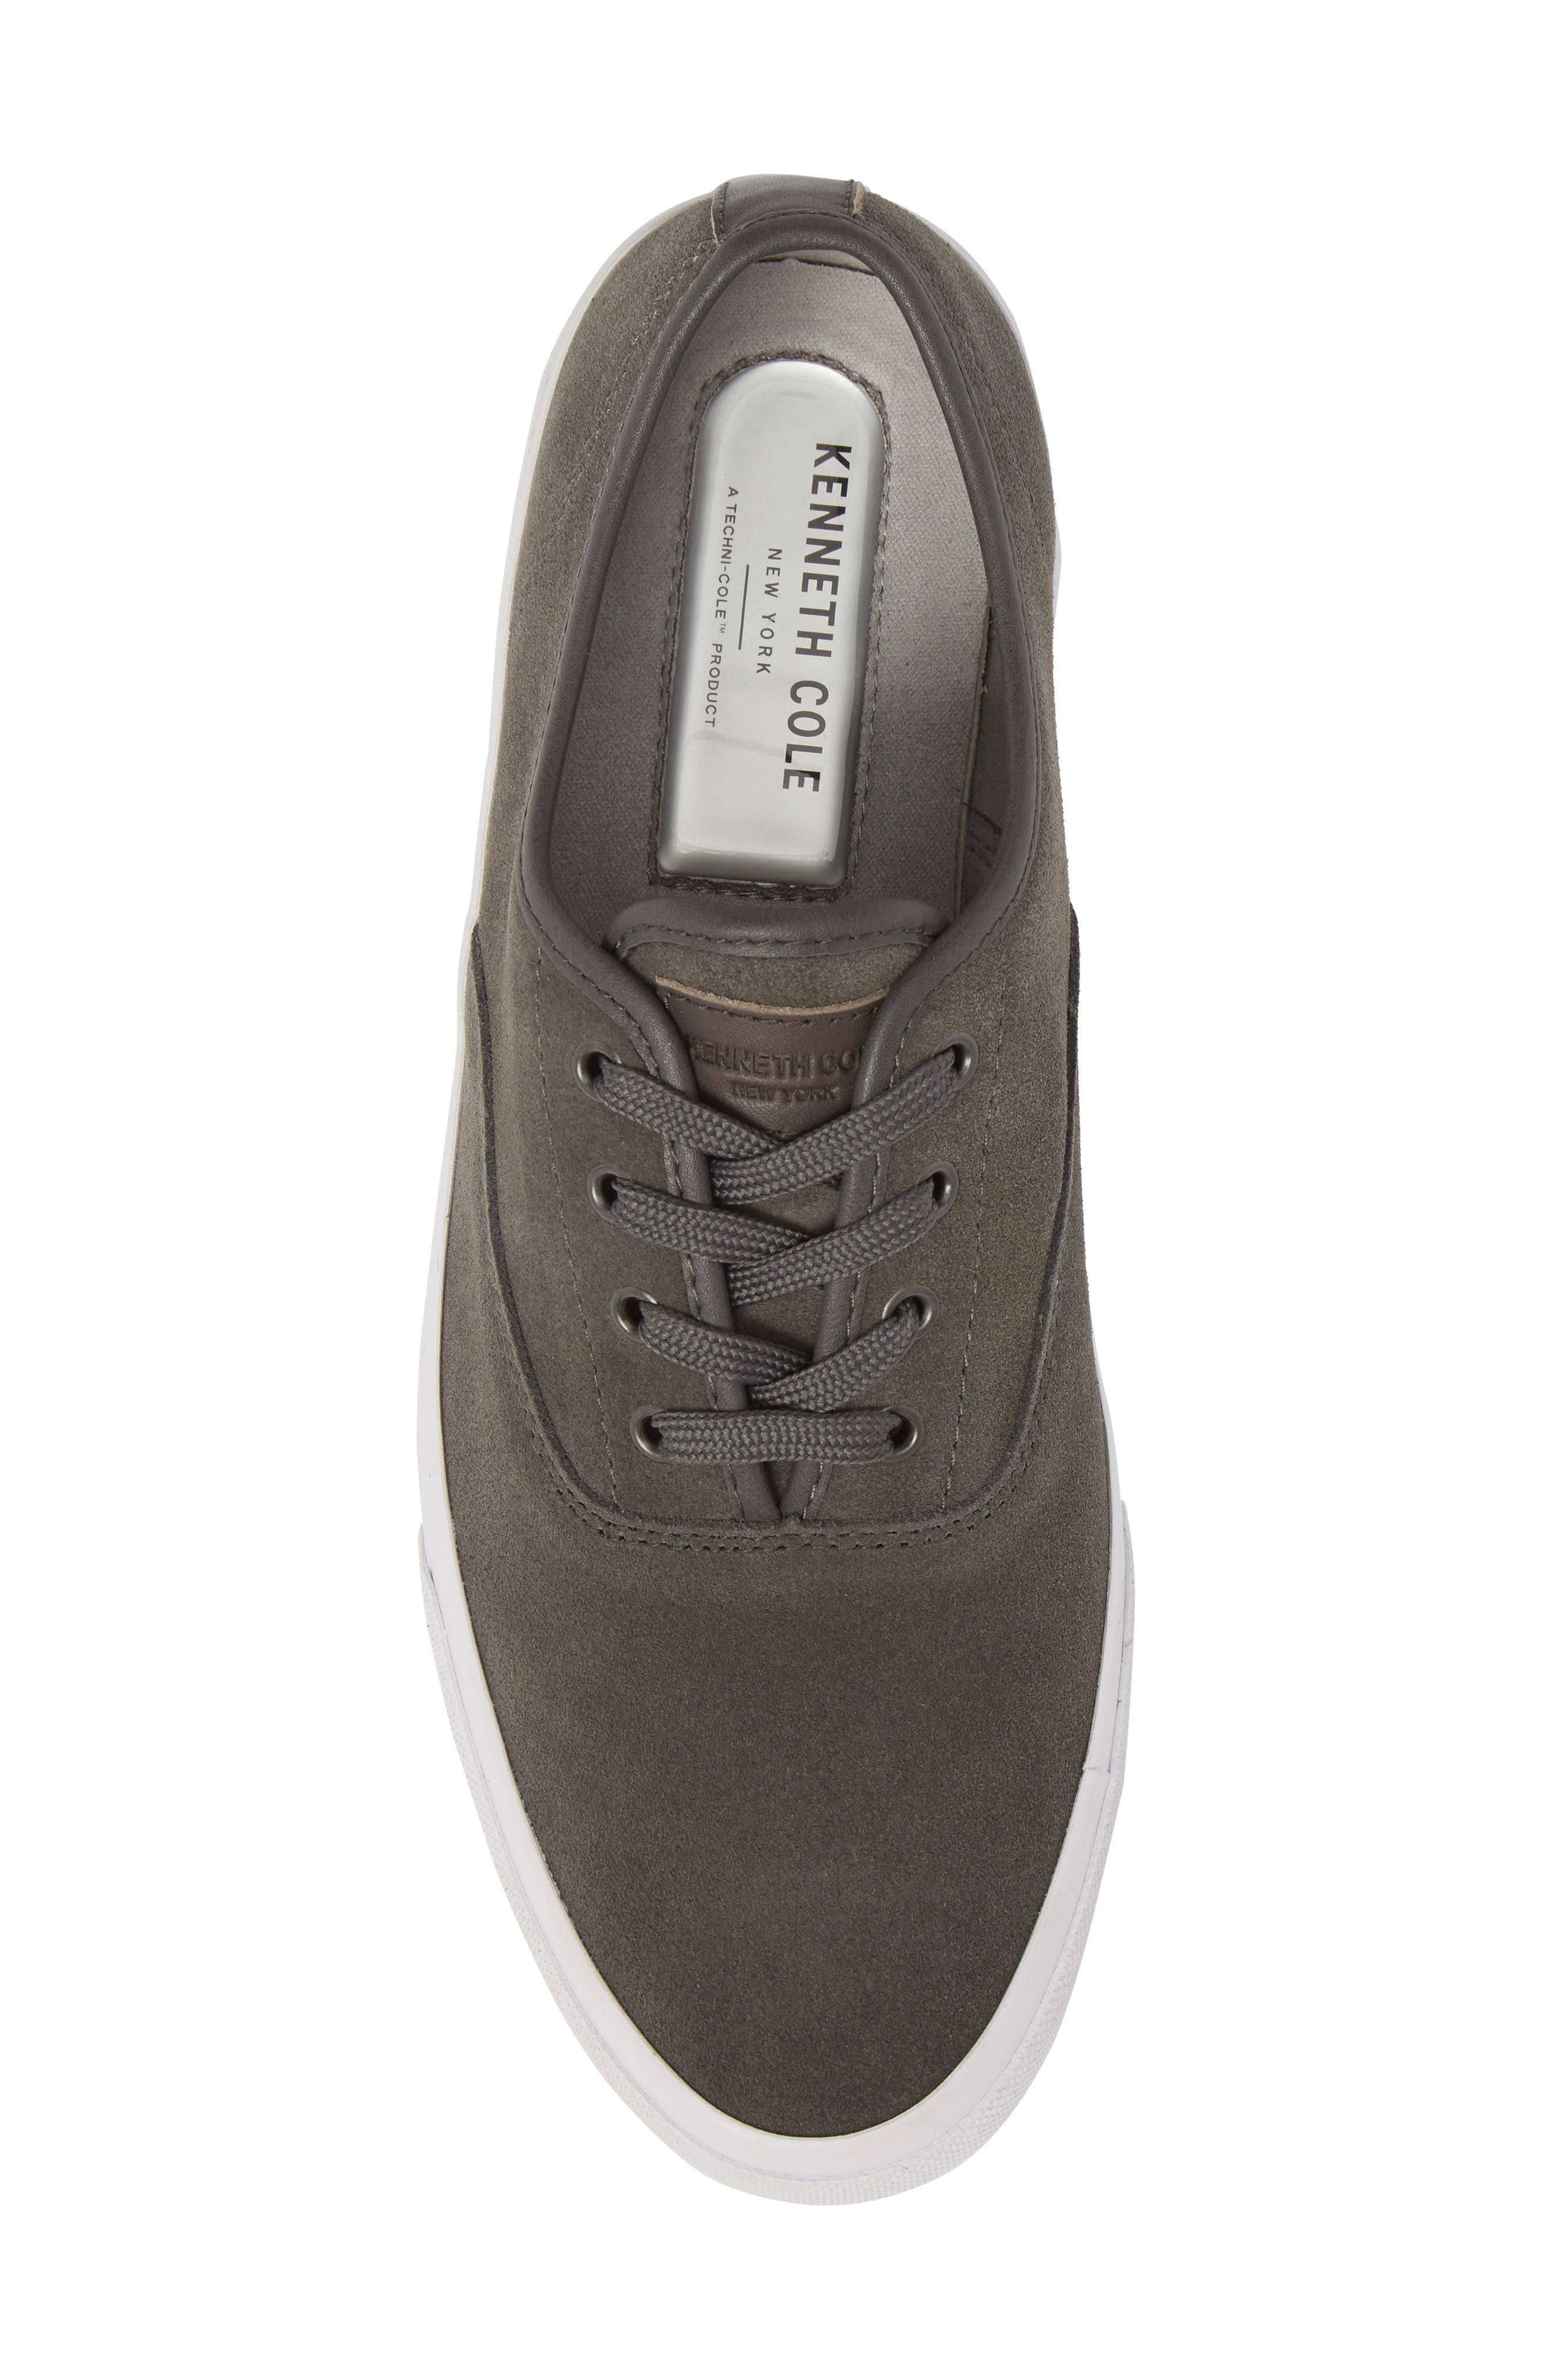 Toor Low Top Sneaker,                             Alternate thumbnail 5, color,                             GREY COMBO SUEDE